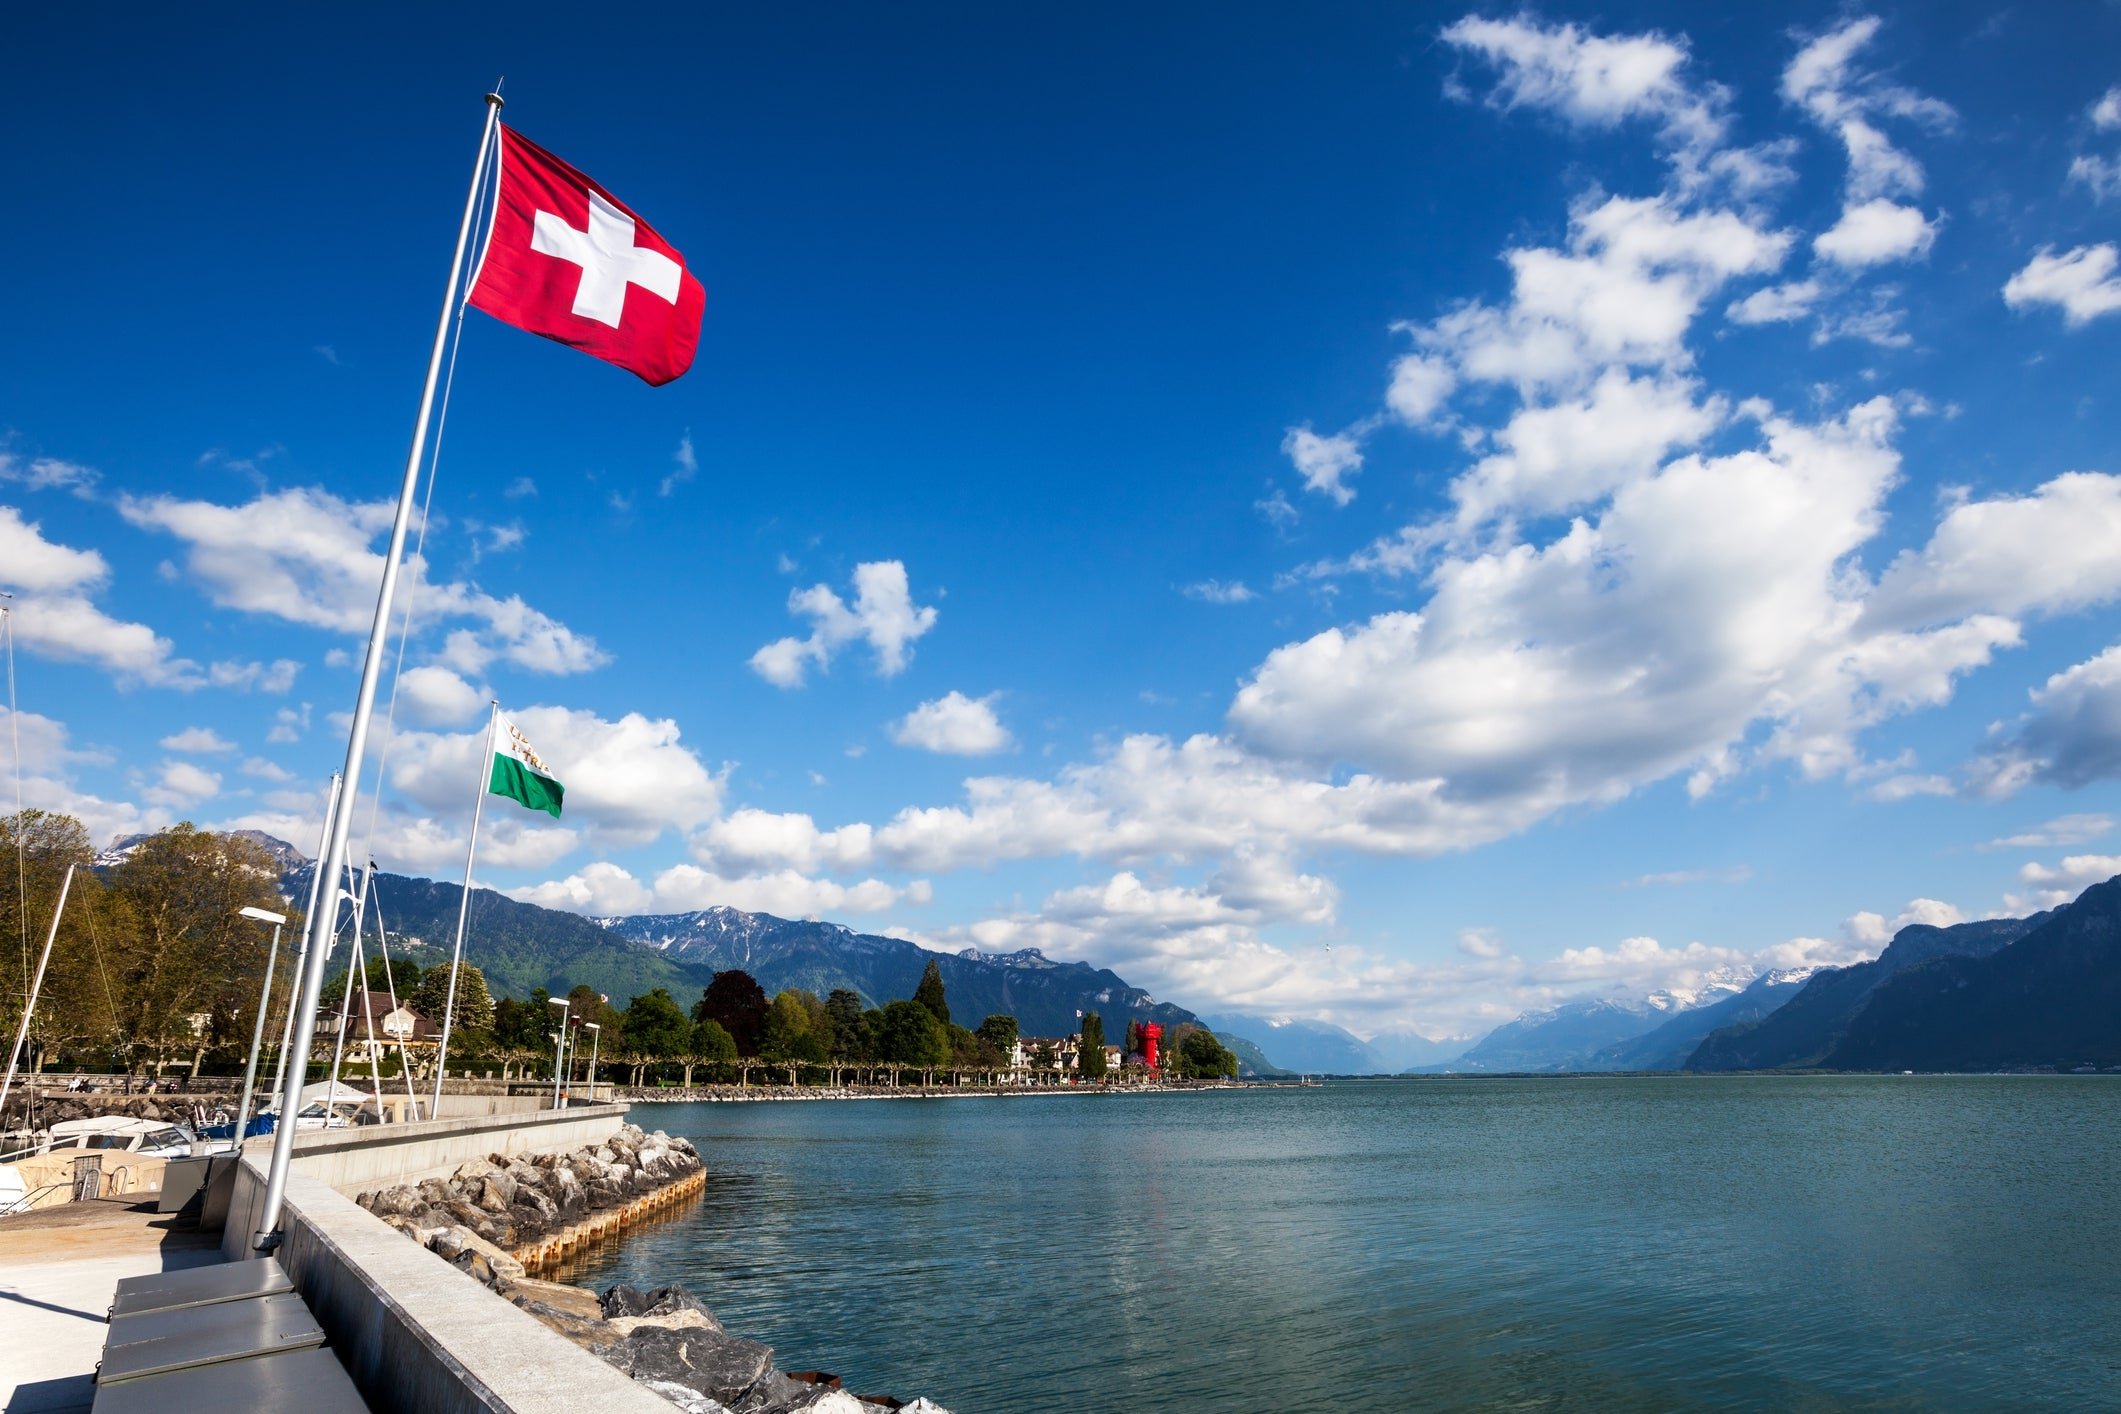 Vevey, Switzerland: A once-in-a-generation winegrowers' festival on the Swiss Riviera